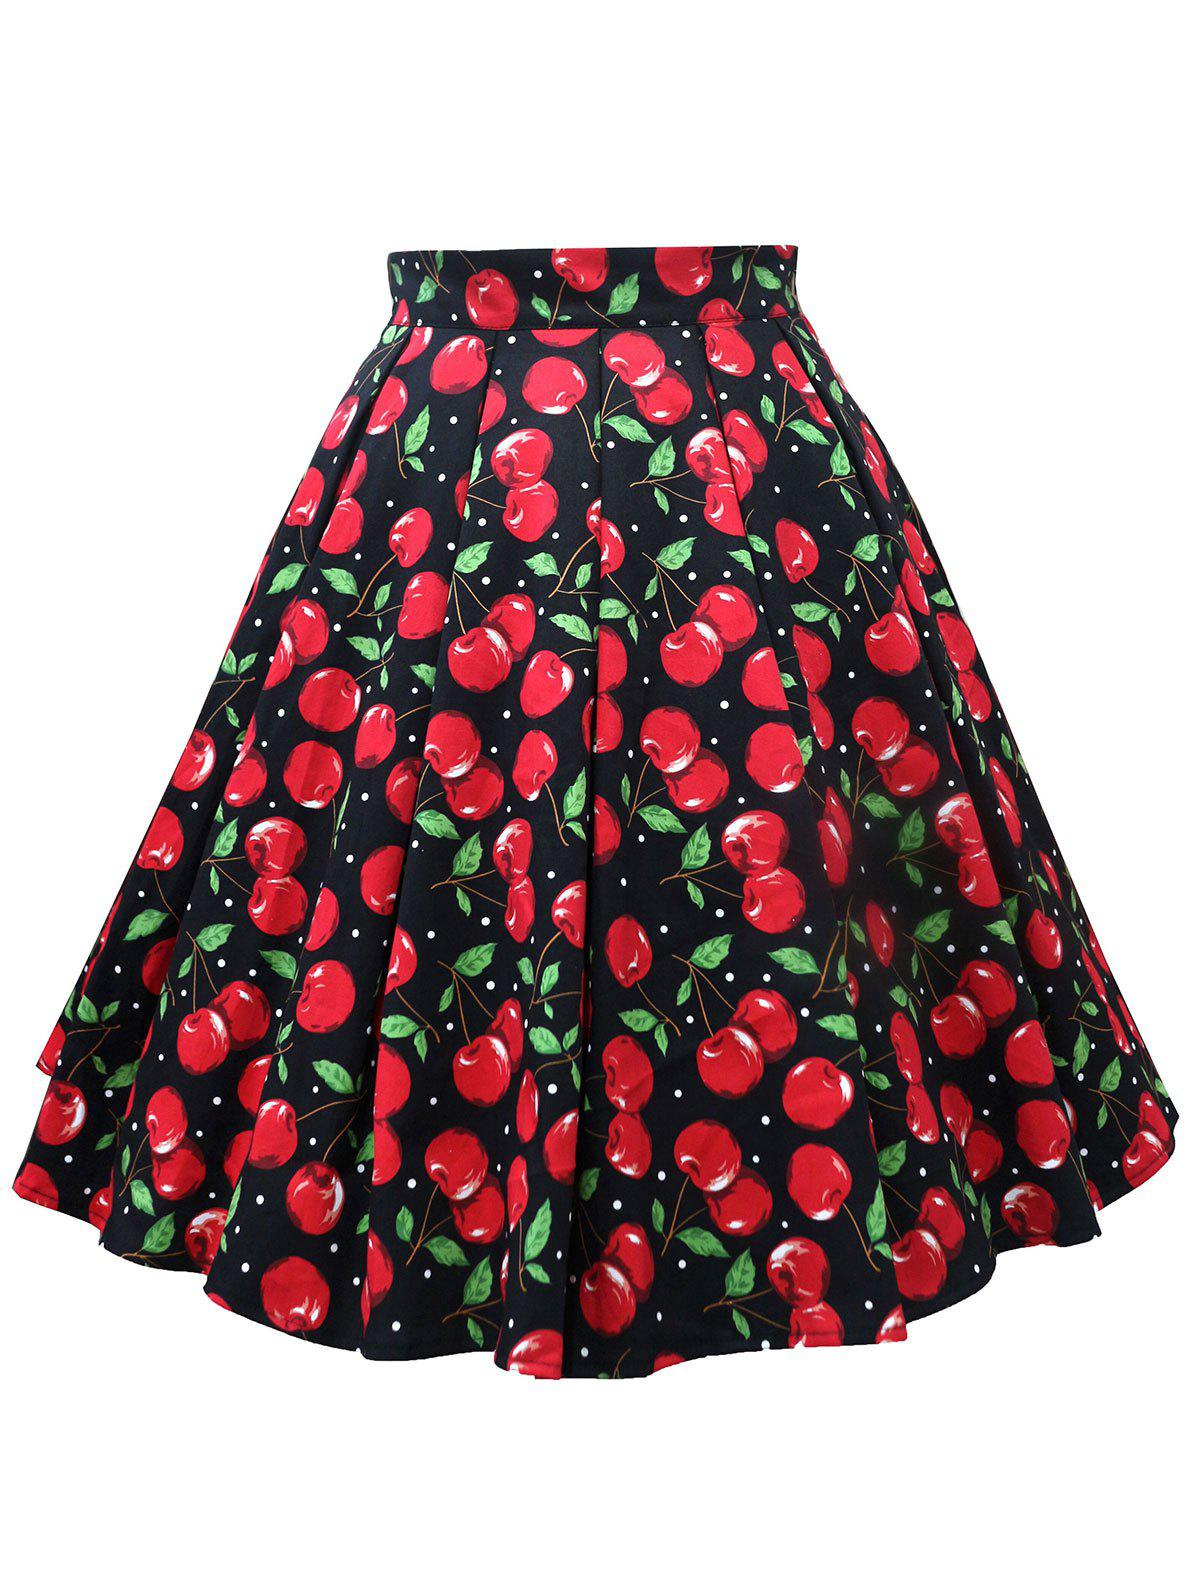 Discount Plus Size Cherry Print A Line Skirt